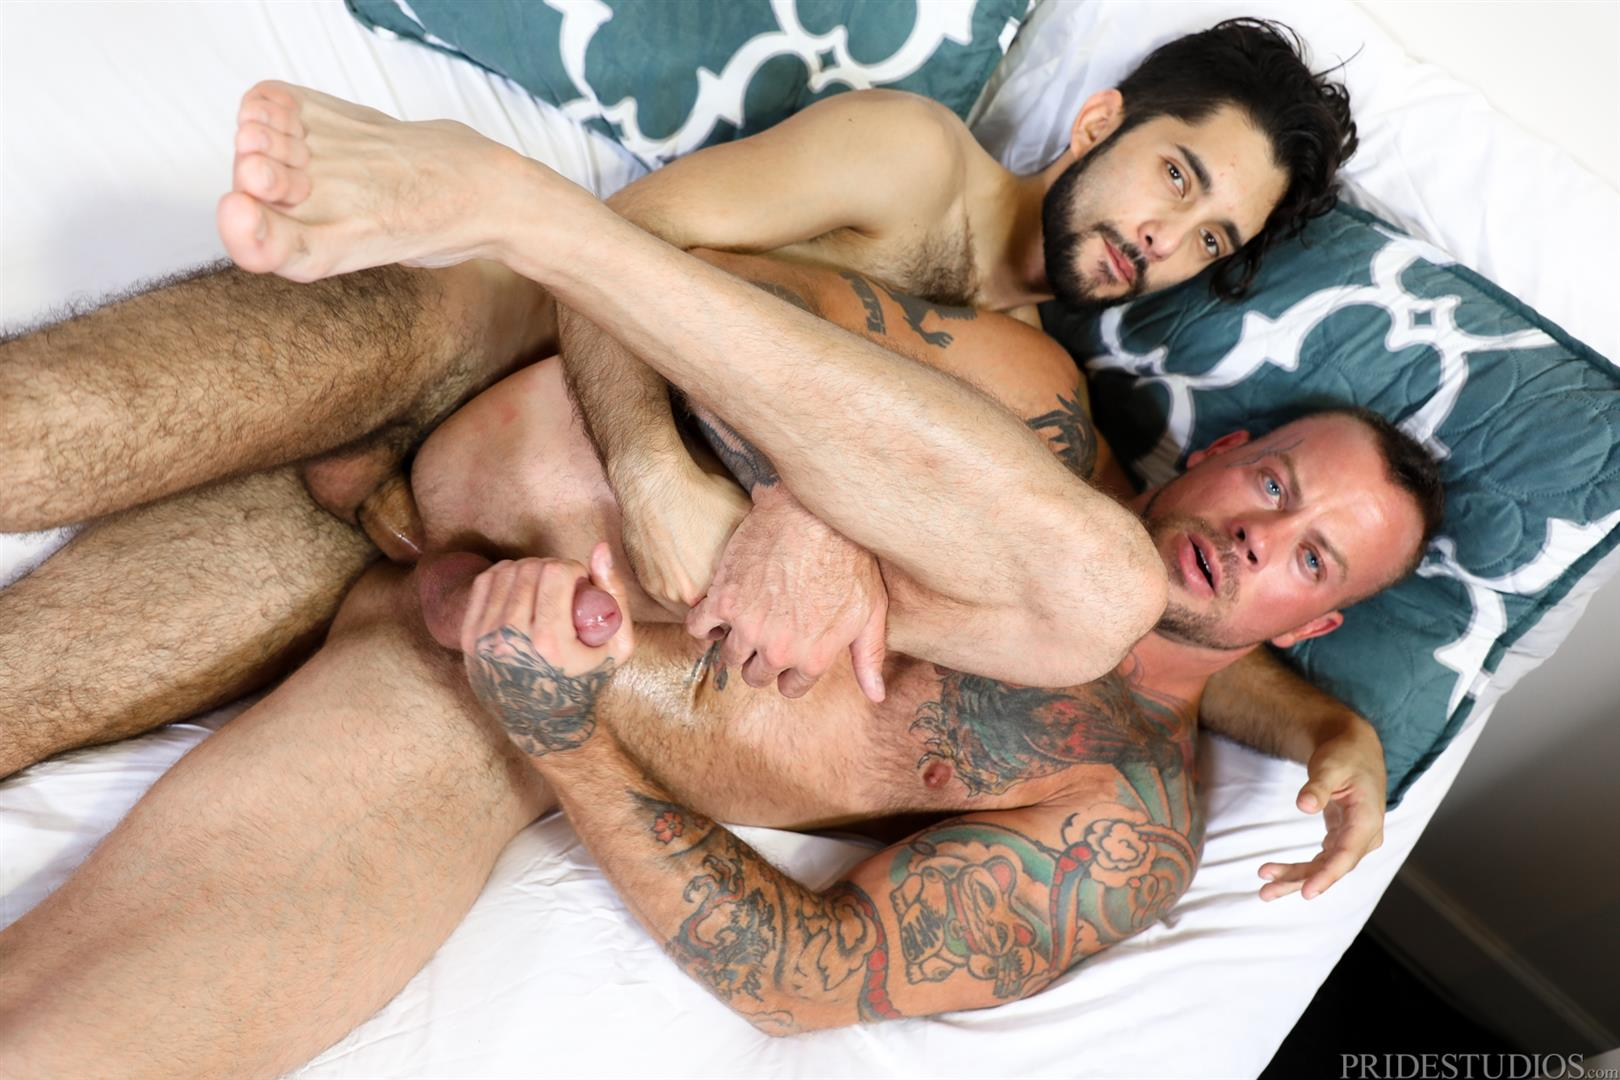 Extra-Big-Dicks-Sean-Duran-and-Jacob-Connar-Big-Uncut-Cock-bareback-sex-11 Watch Muscle Hunk Sean Duran Take A Big Uncut Cock Bareback